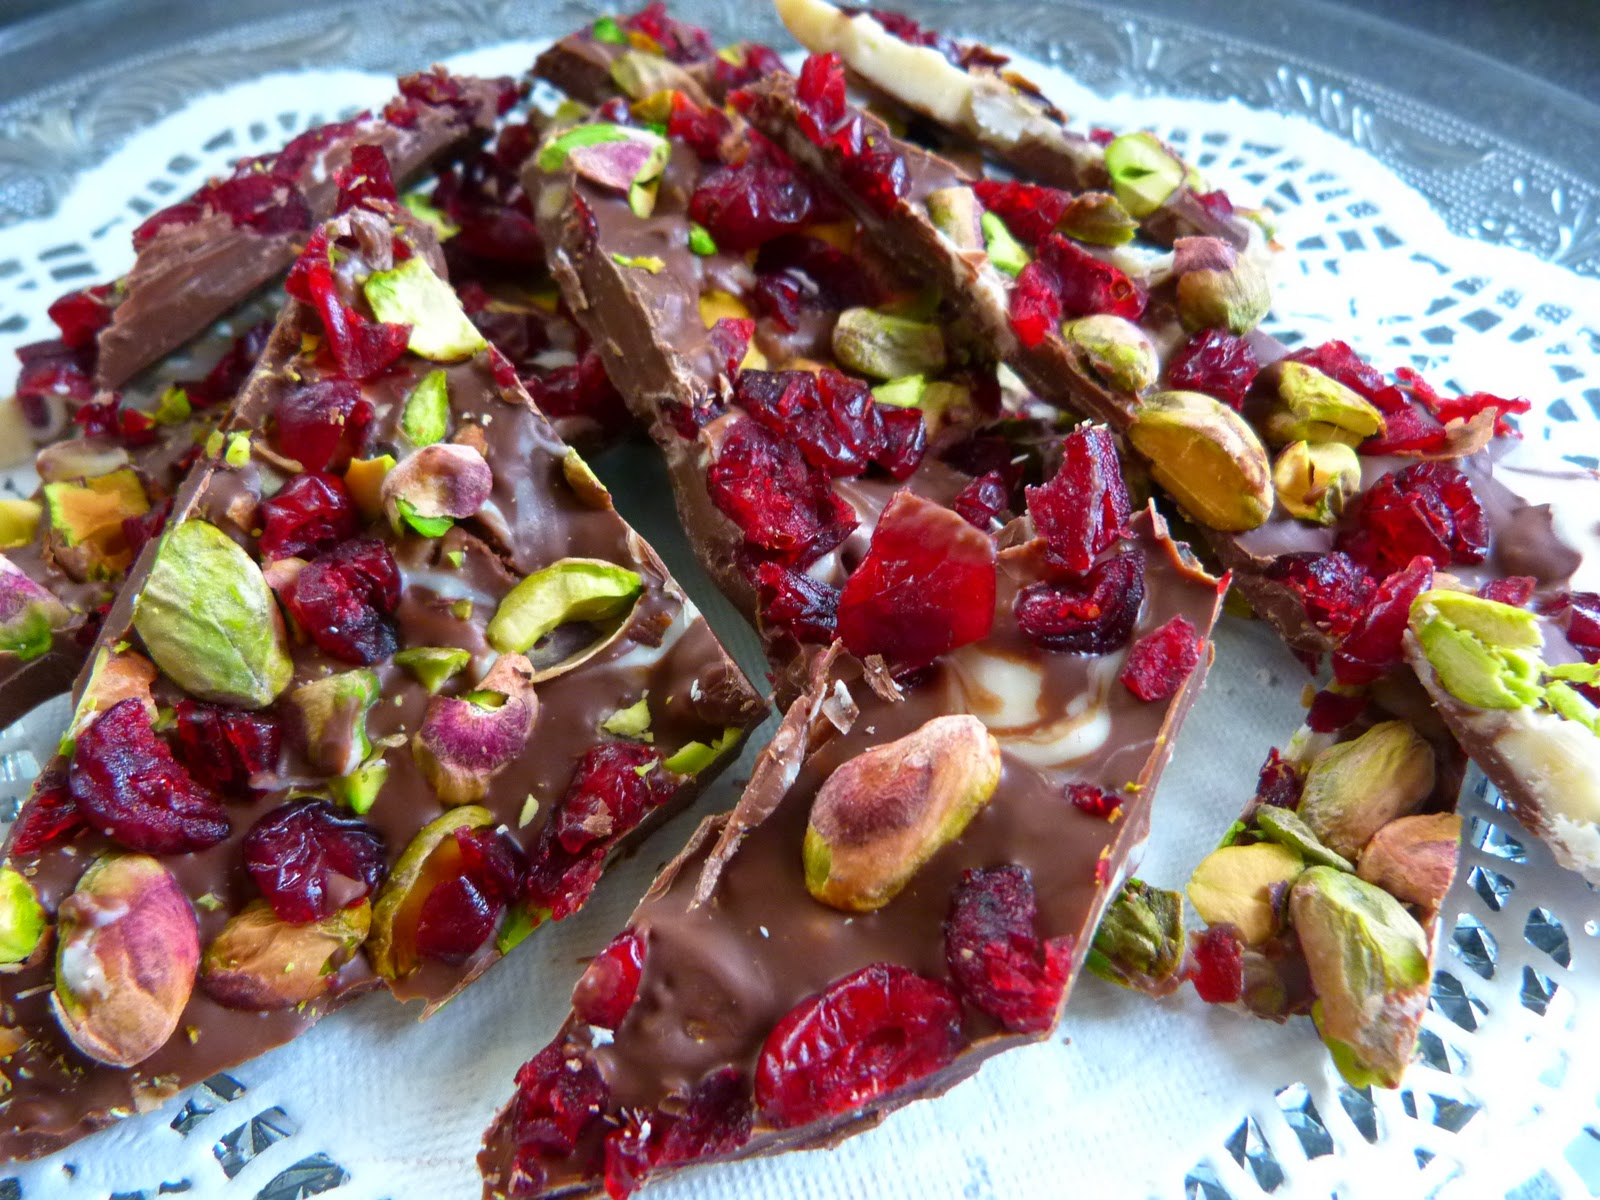 Cranberry and Pistachio Chocolate Bark